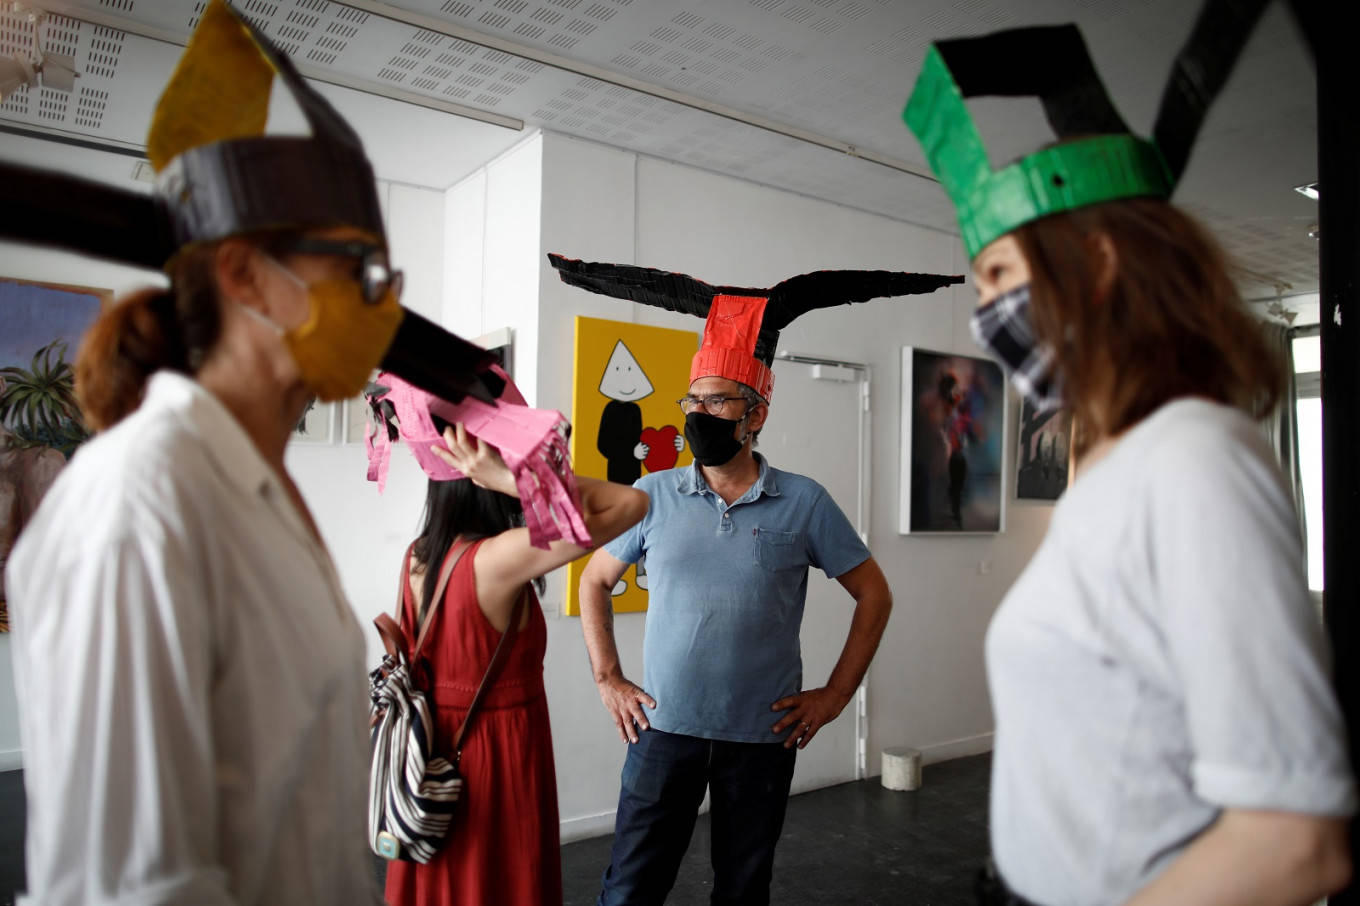 Special hats in this Paris art gallery will help maintain social distancing